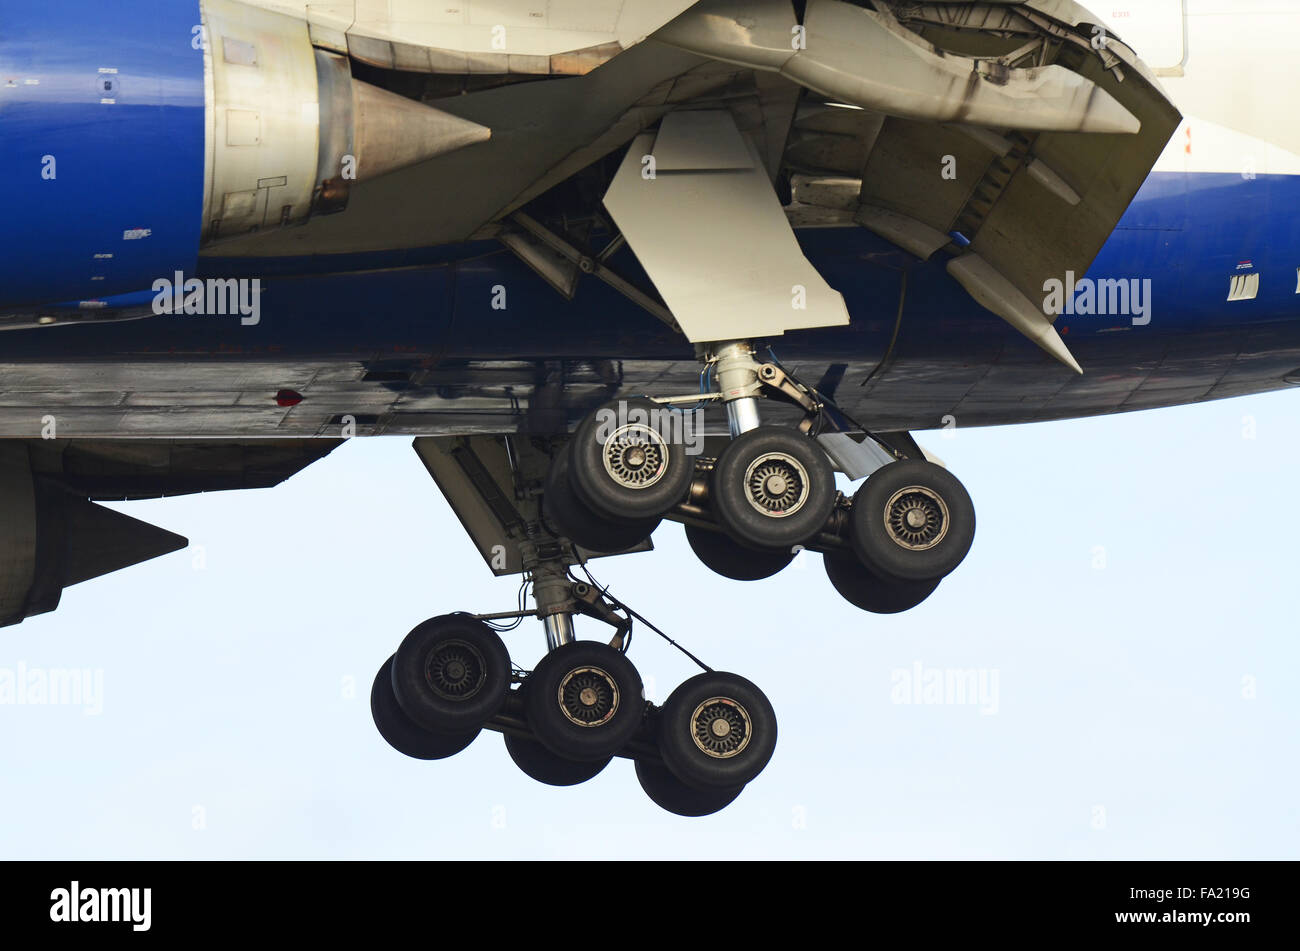 Undercarriage of a British Airways Boeing 777 plane as it comes in to land at London Heathrow Airport. Space for - Stock Image